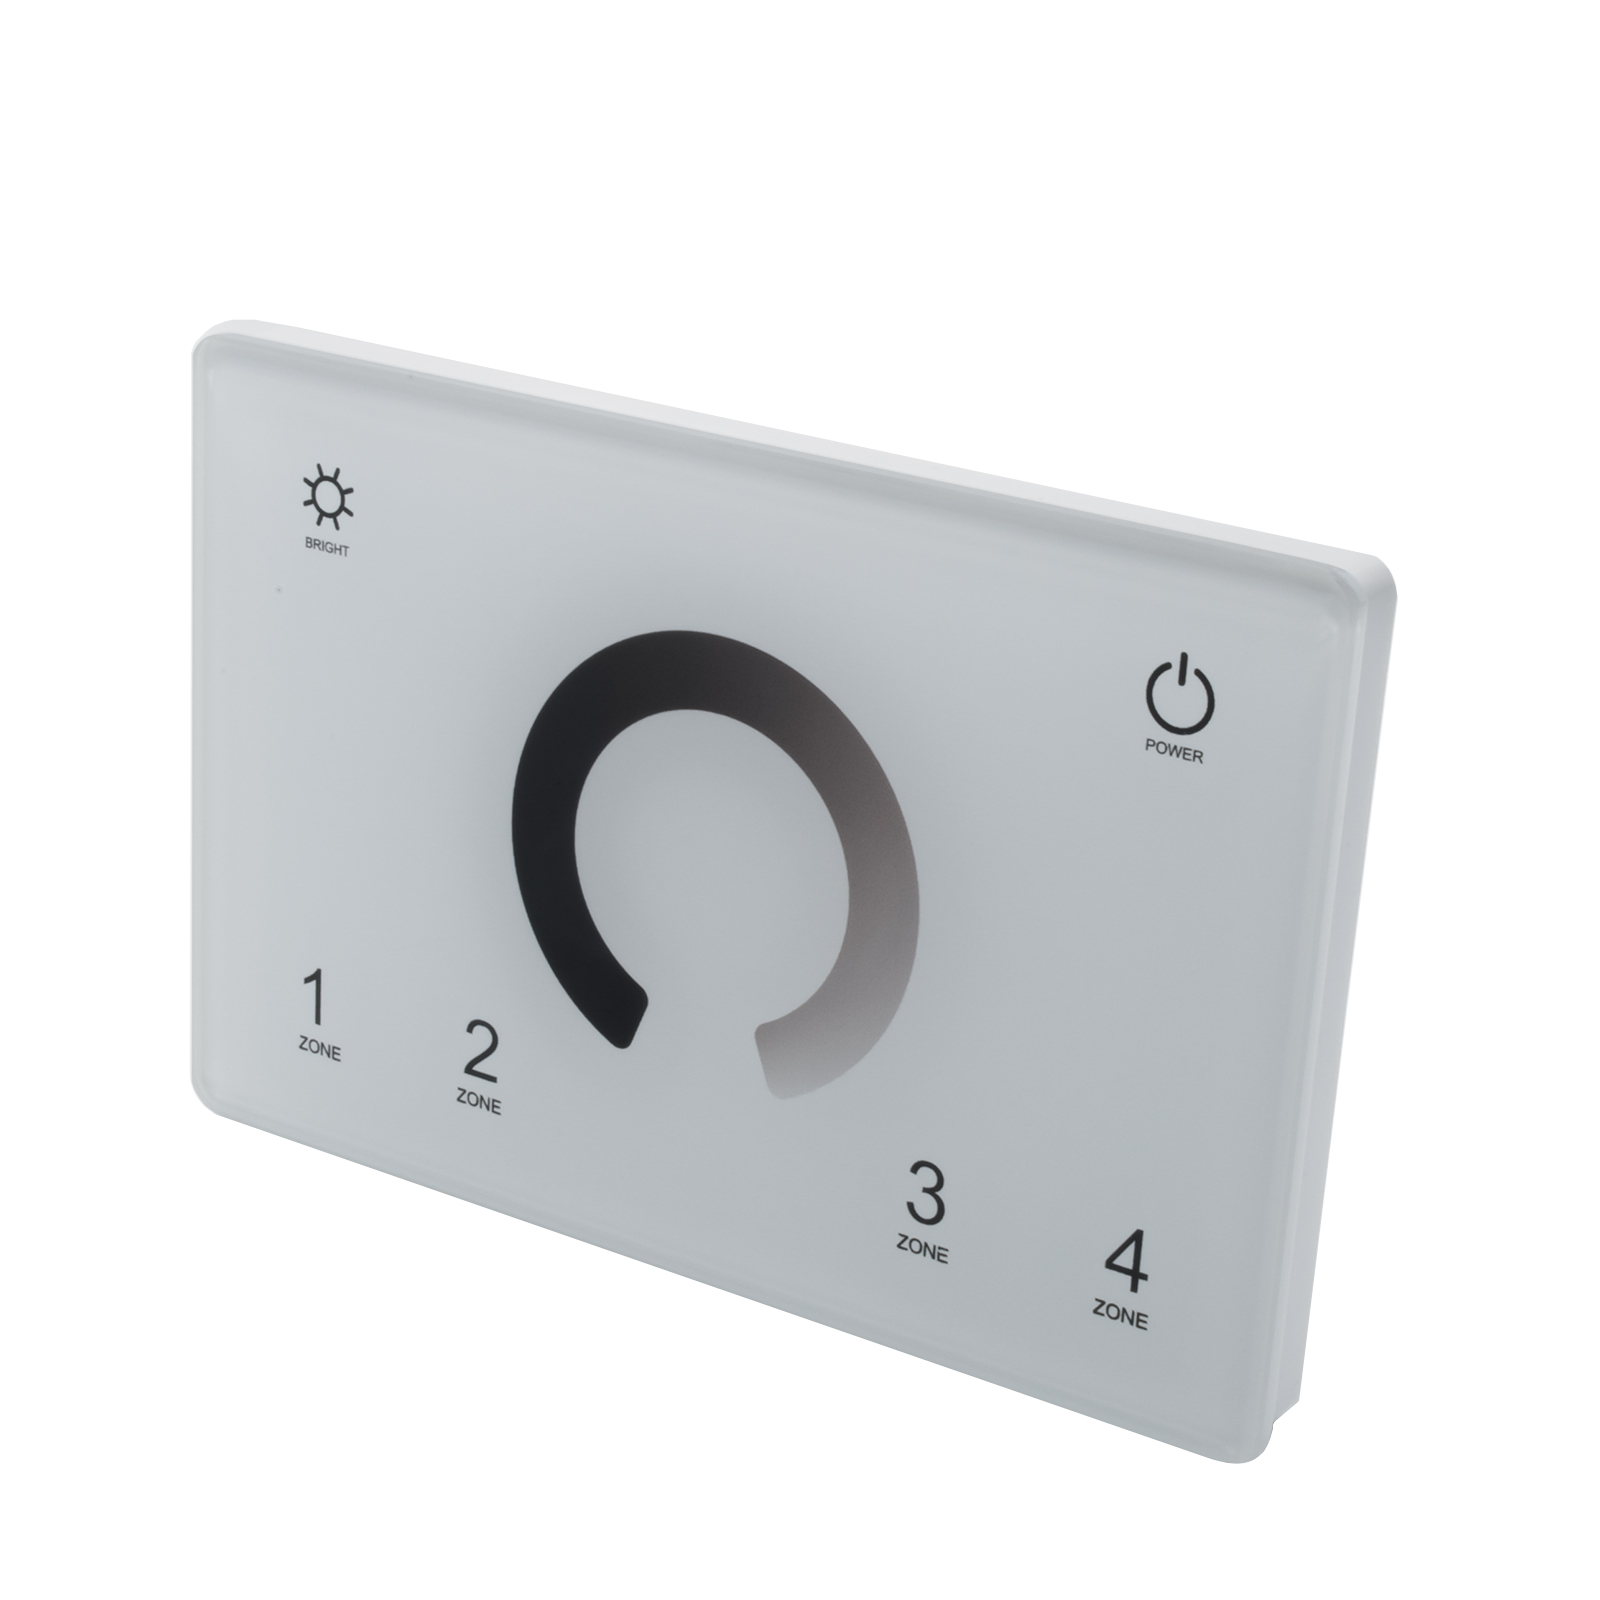 Wall recessed touch dimmer controller LED panel 503 4-zone DMX 512 RF box